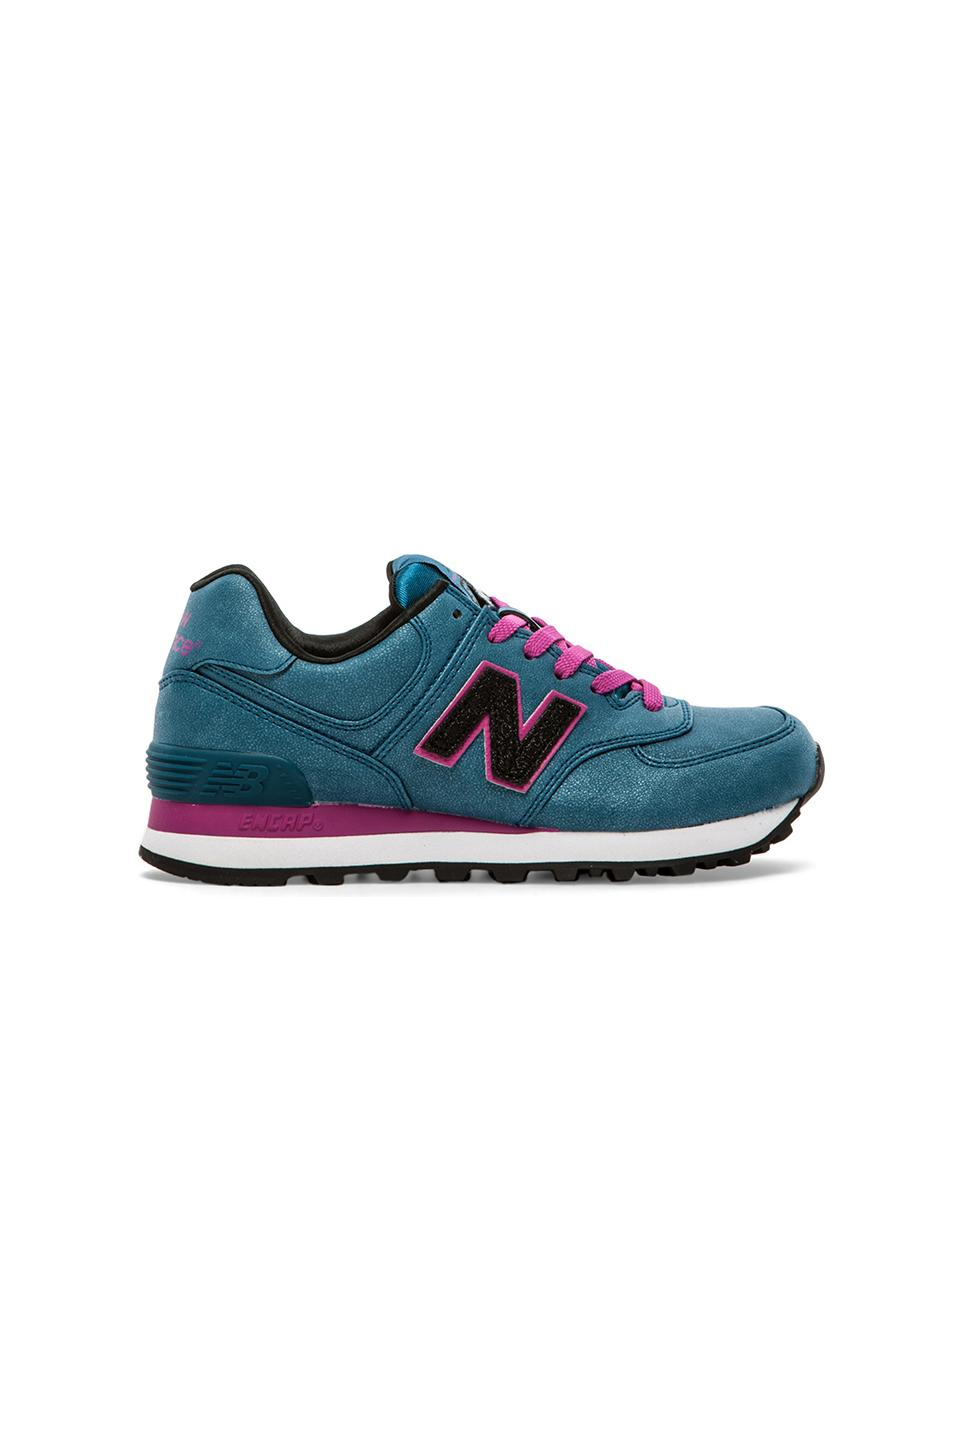 New Balance Precious Metals Collection in Blue & Rasberry